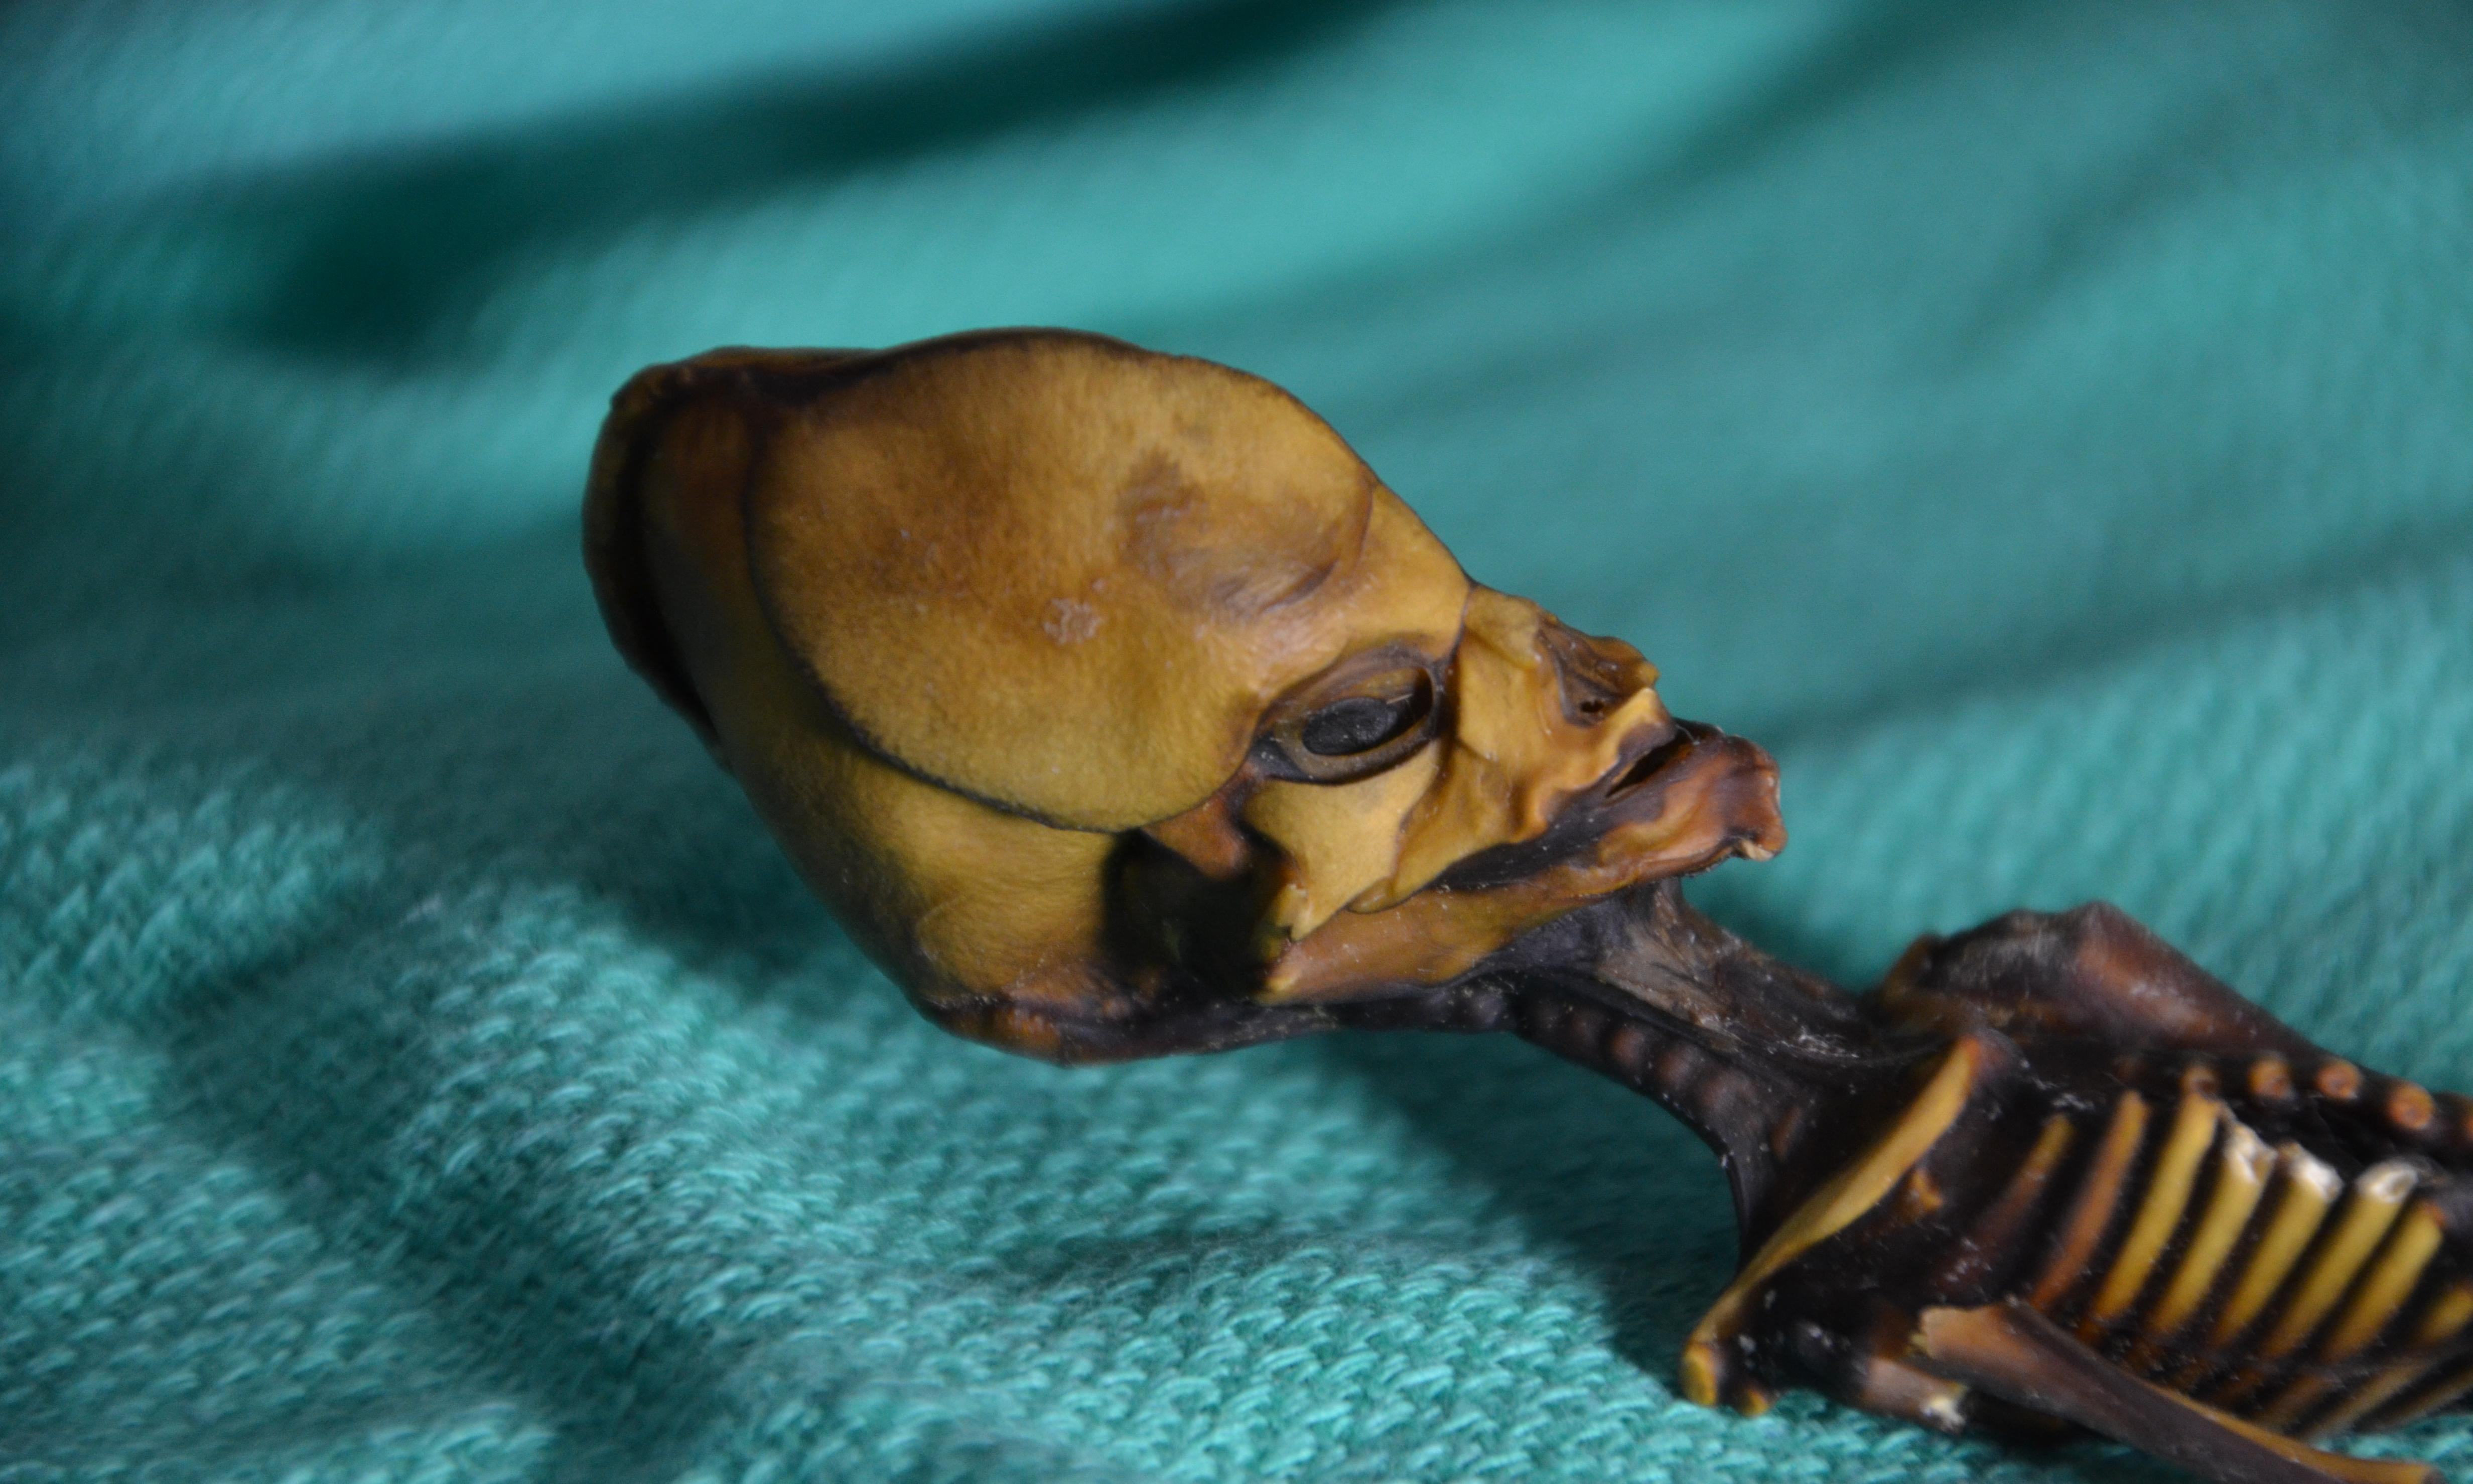 Genetic tests reveal tragic reality of Atacama 'alien' skeleton